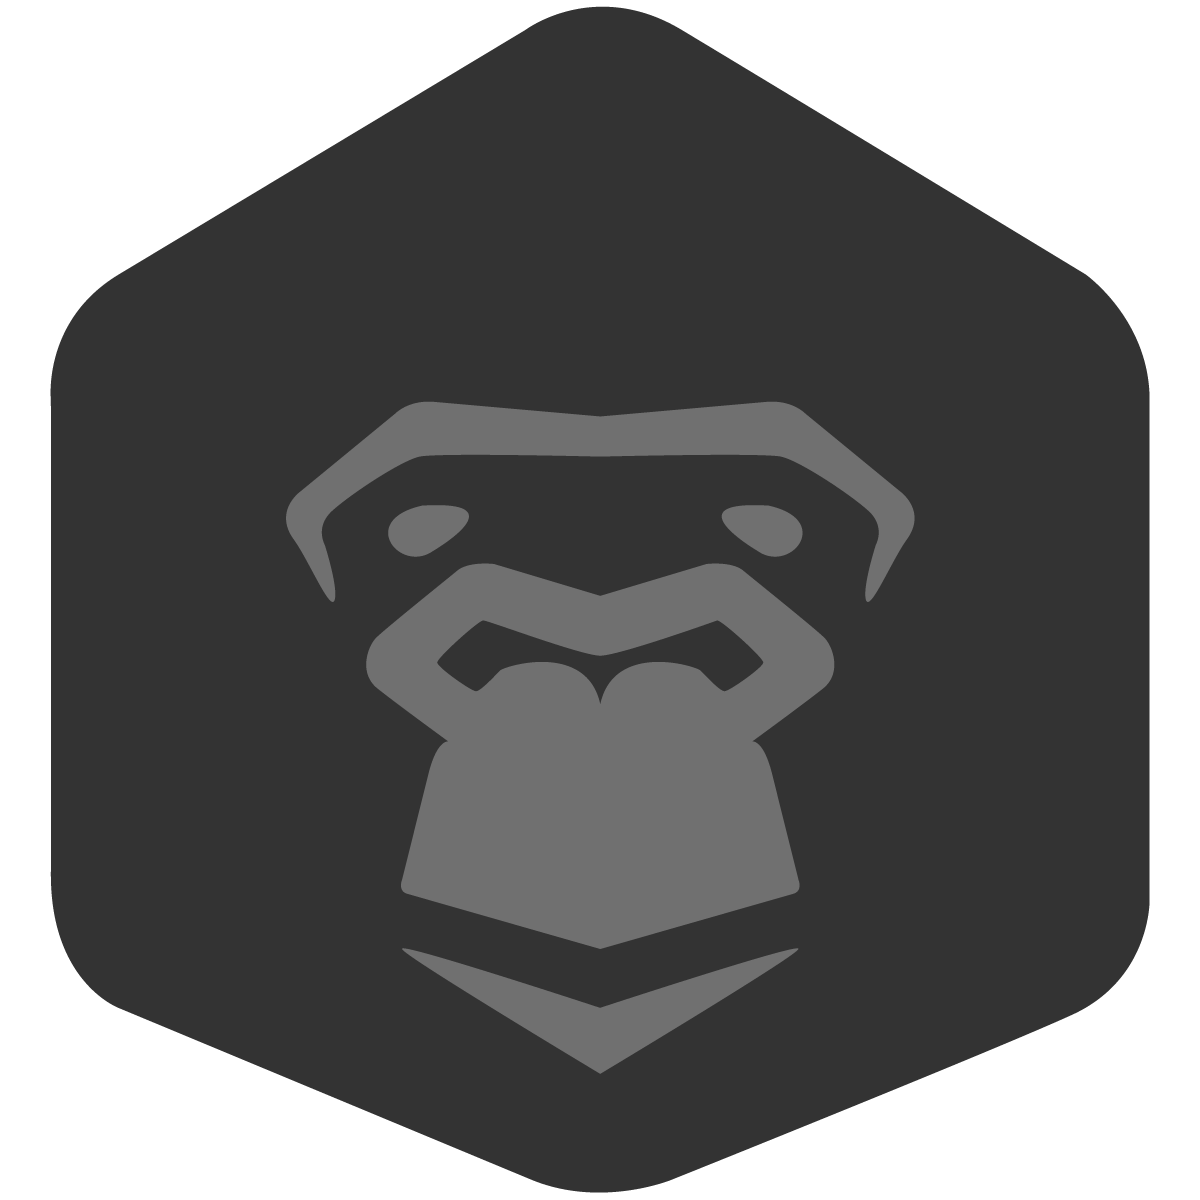 Gorilla head png. Give world class fundraising